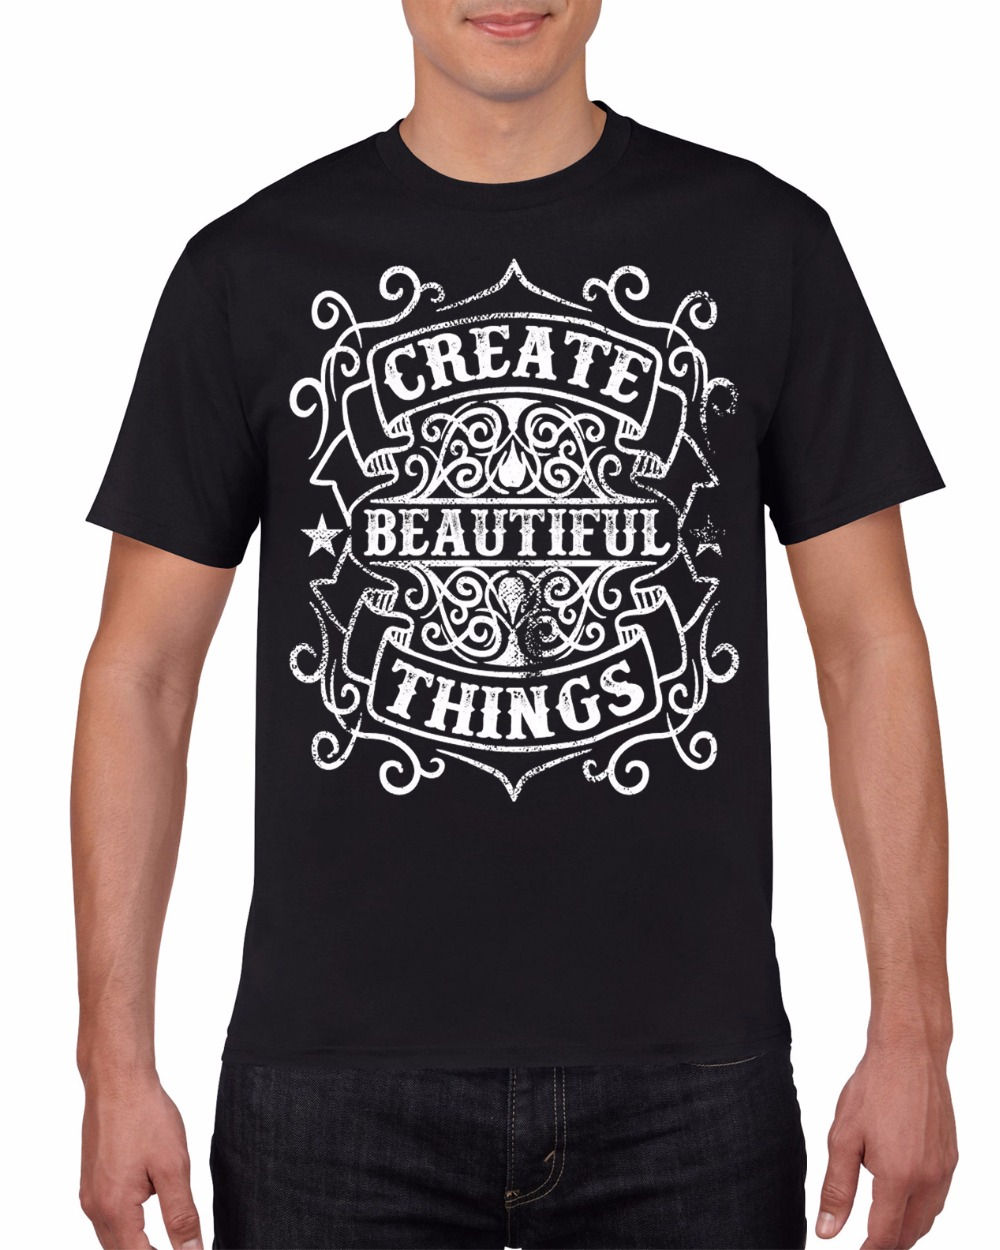 Men Brand Famous Clothing Custom T Shirts Create Beautiful Things